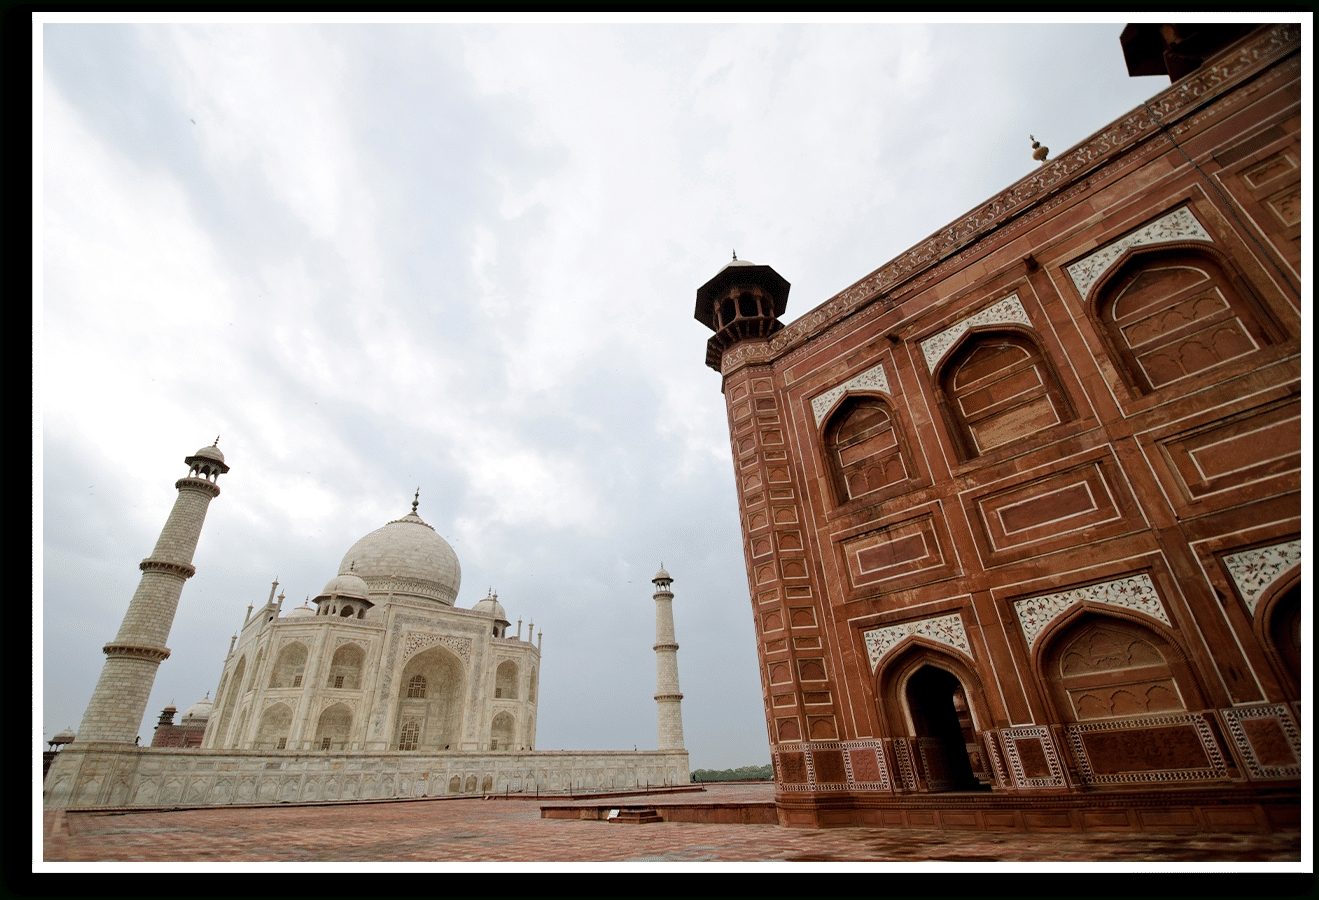 Dailyobjects Taj Mahal Perspective Small Wall Art Print Small Intended For Famous Taj Mahal Wall Art (View 1 of 15)